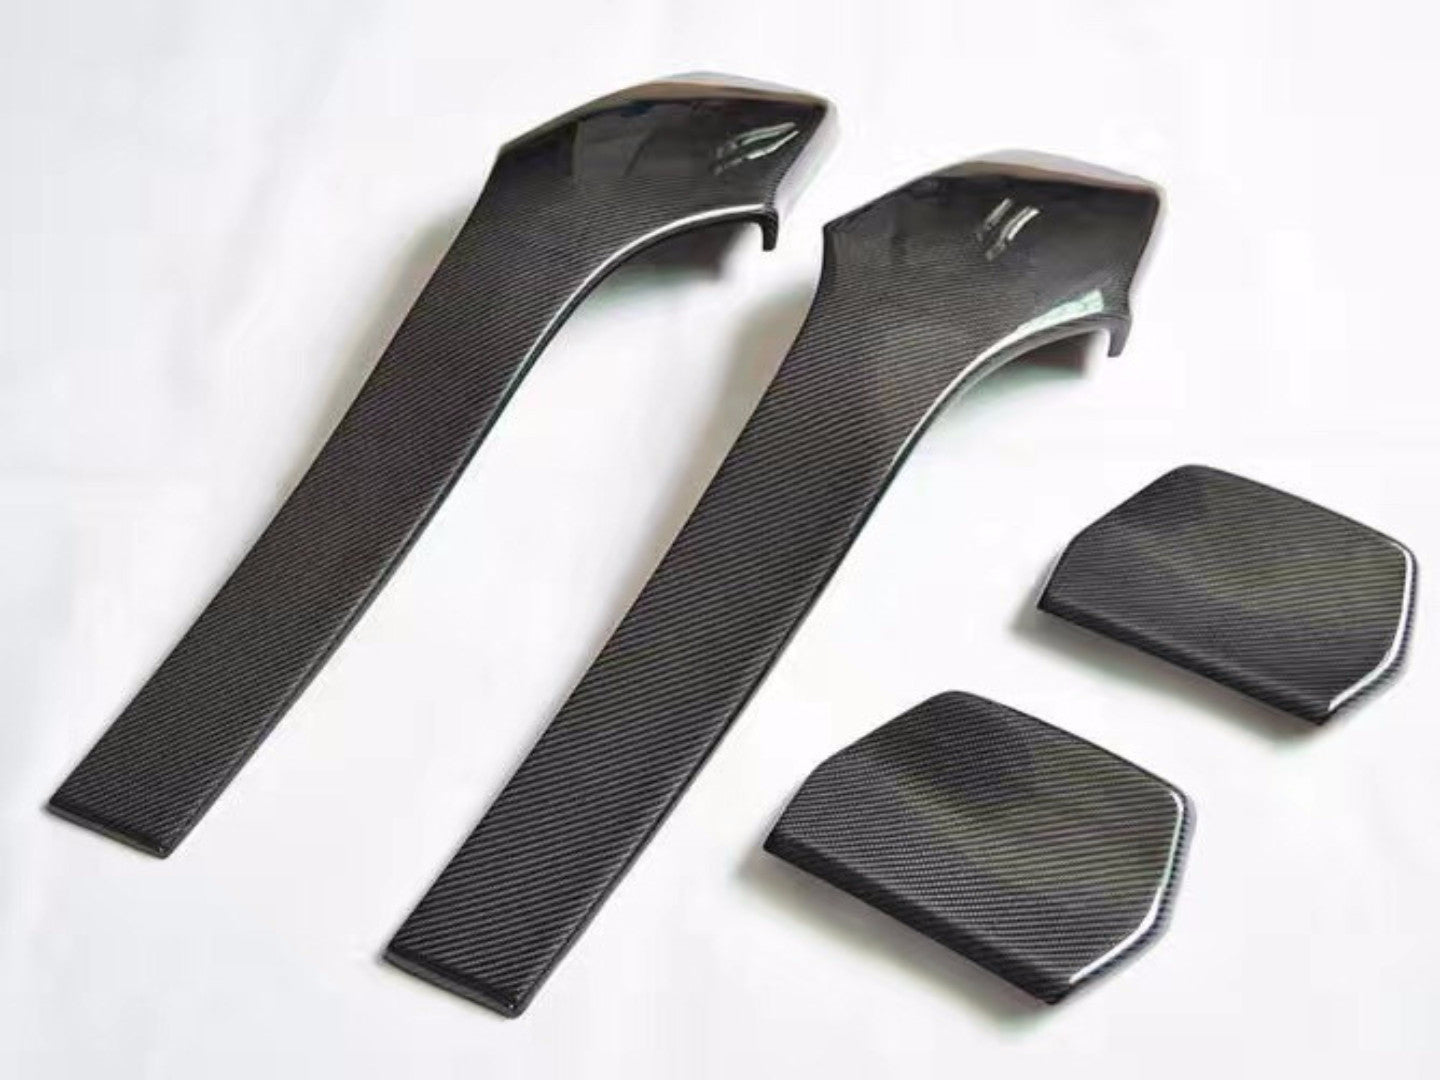 M PERFORMANCE SEAT SHELLS - Interior Accessories - Yomato Carbon - Montreal Canada